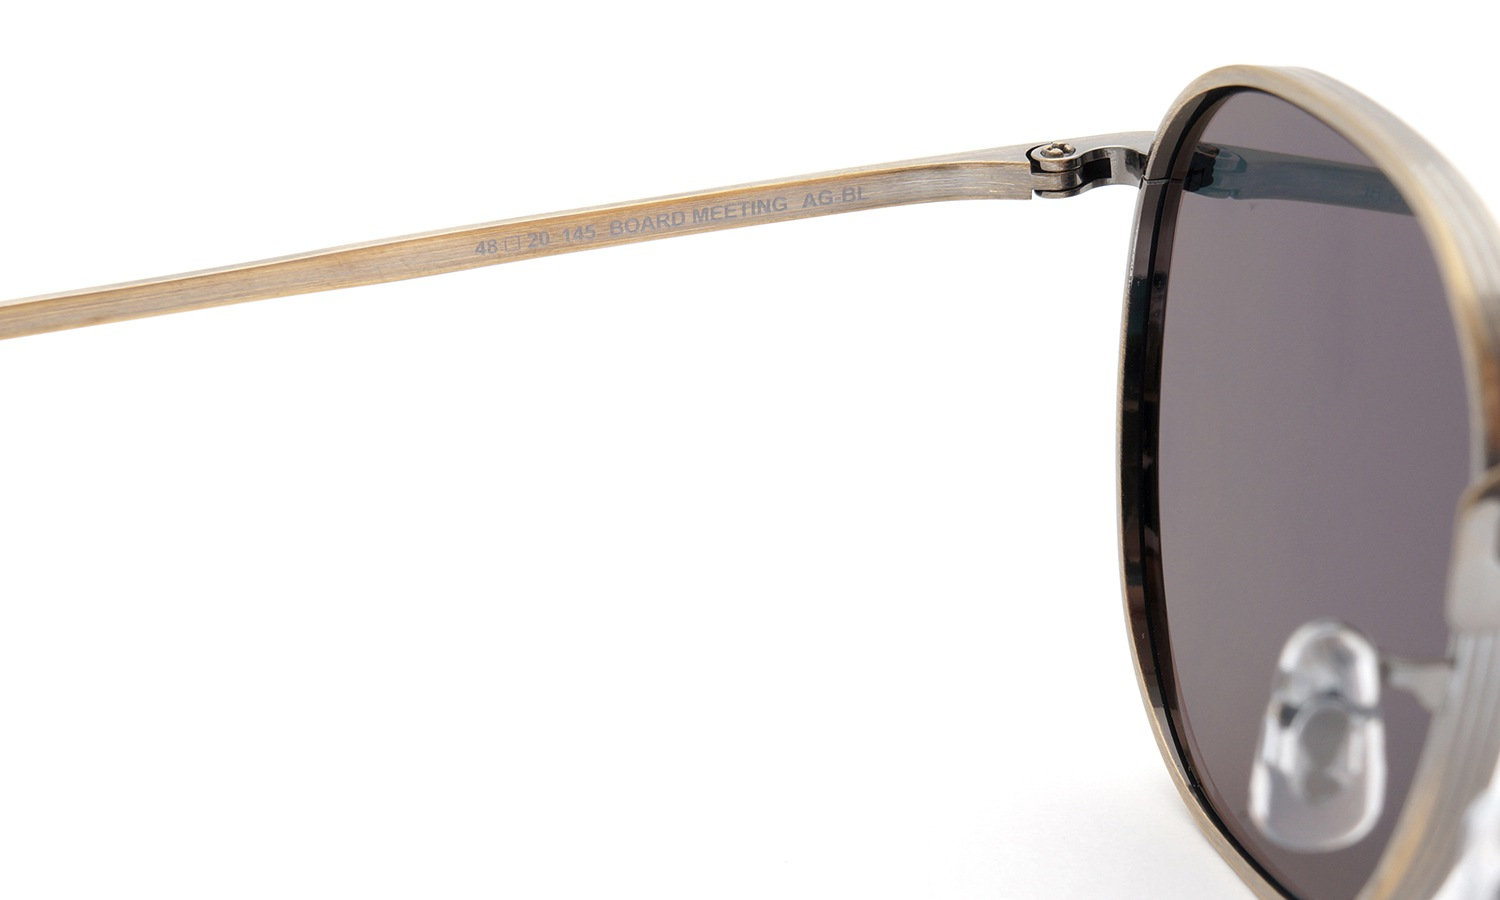 OLIVER PEOPLES × THE ROW サングラス BOARD-MEETING AG/BL 48size